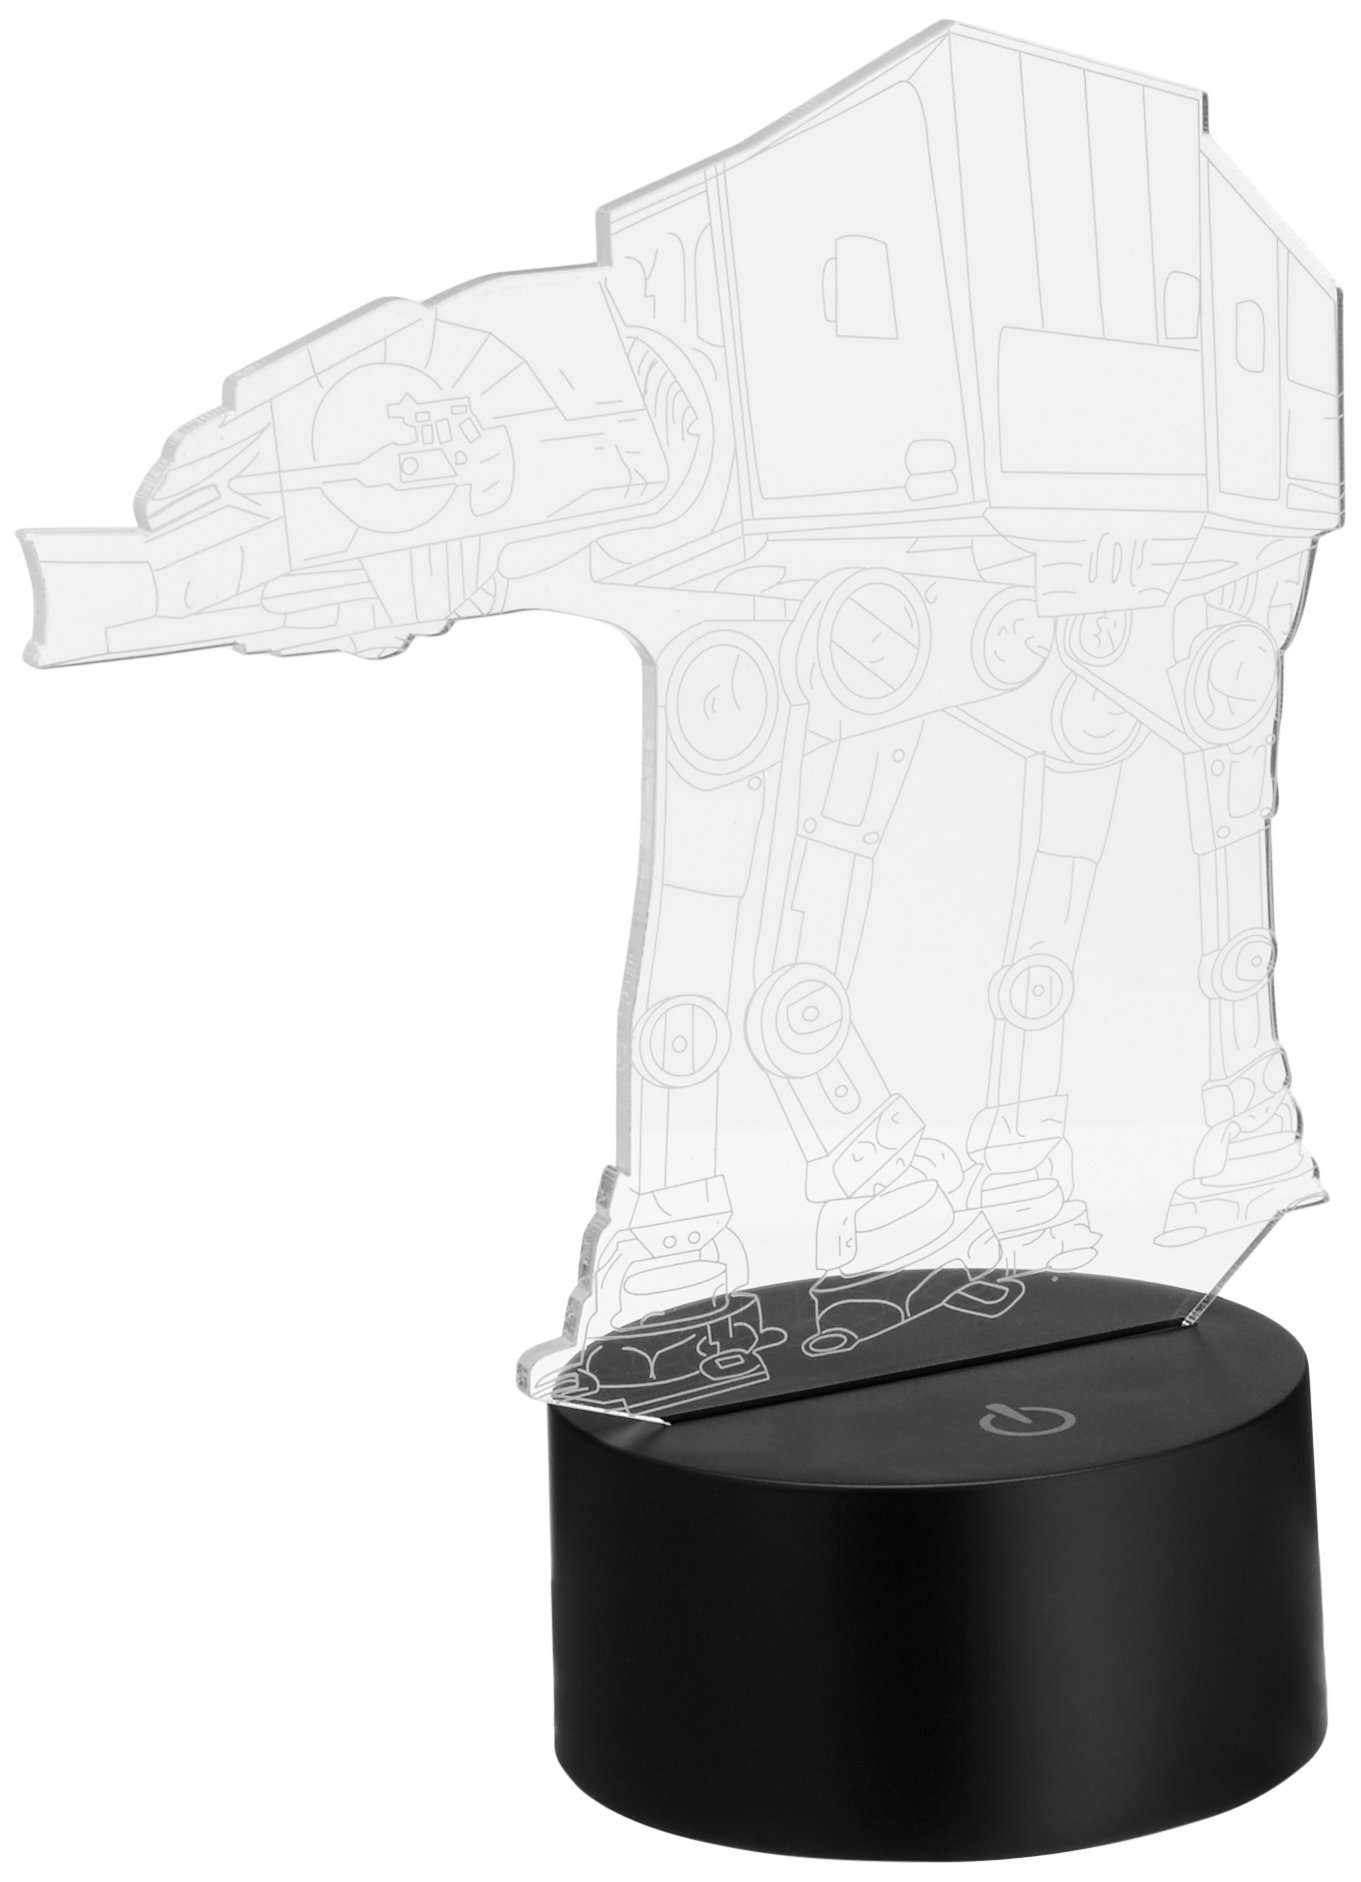 Padaday transpoting walker 3D Star Wars AT-AT Bedroom Children Room decorative Night Lamp